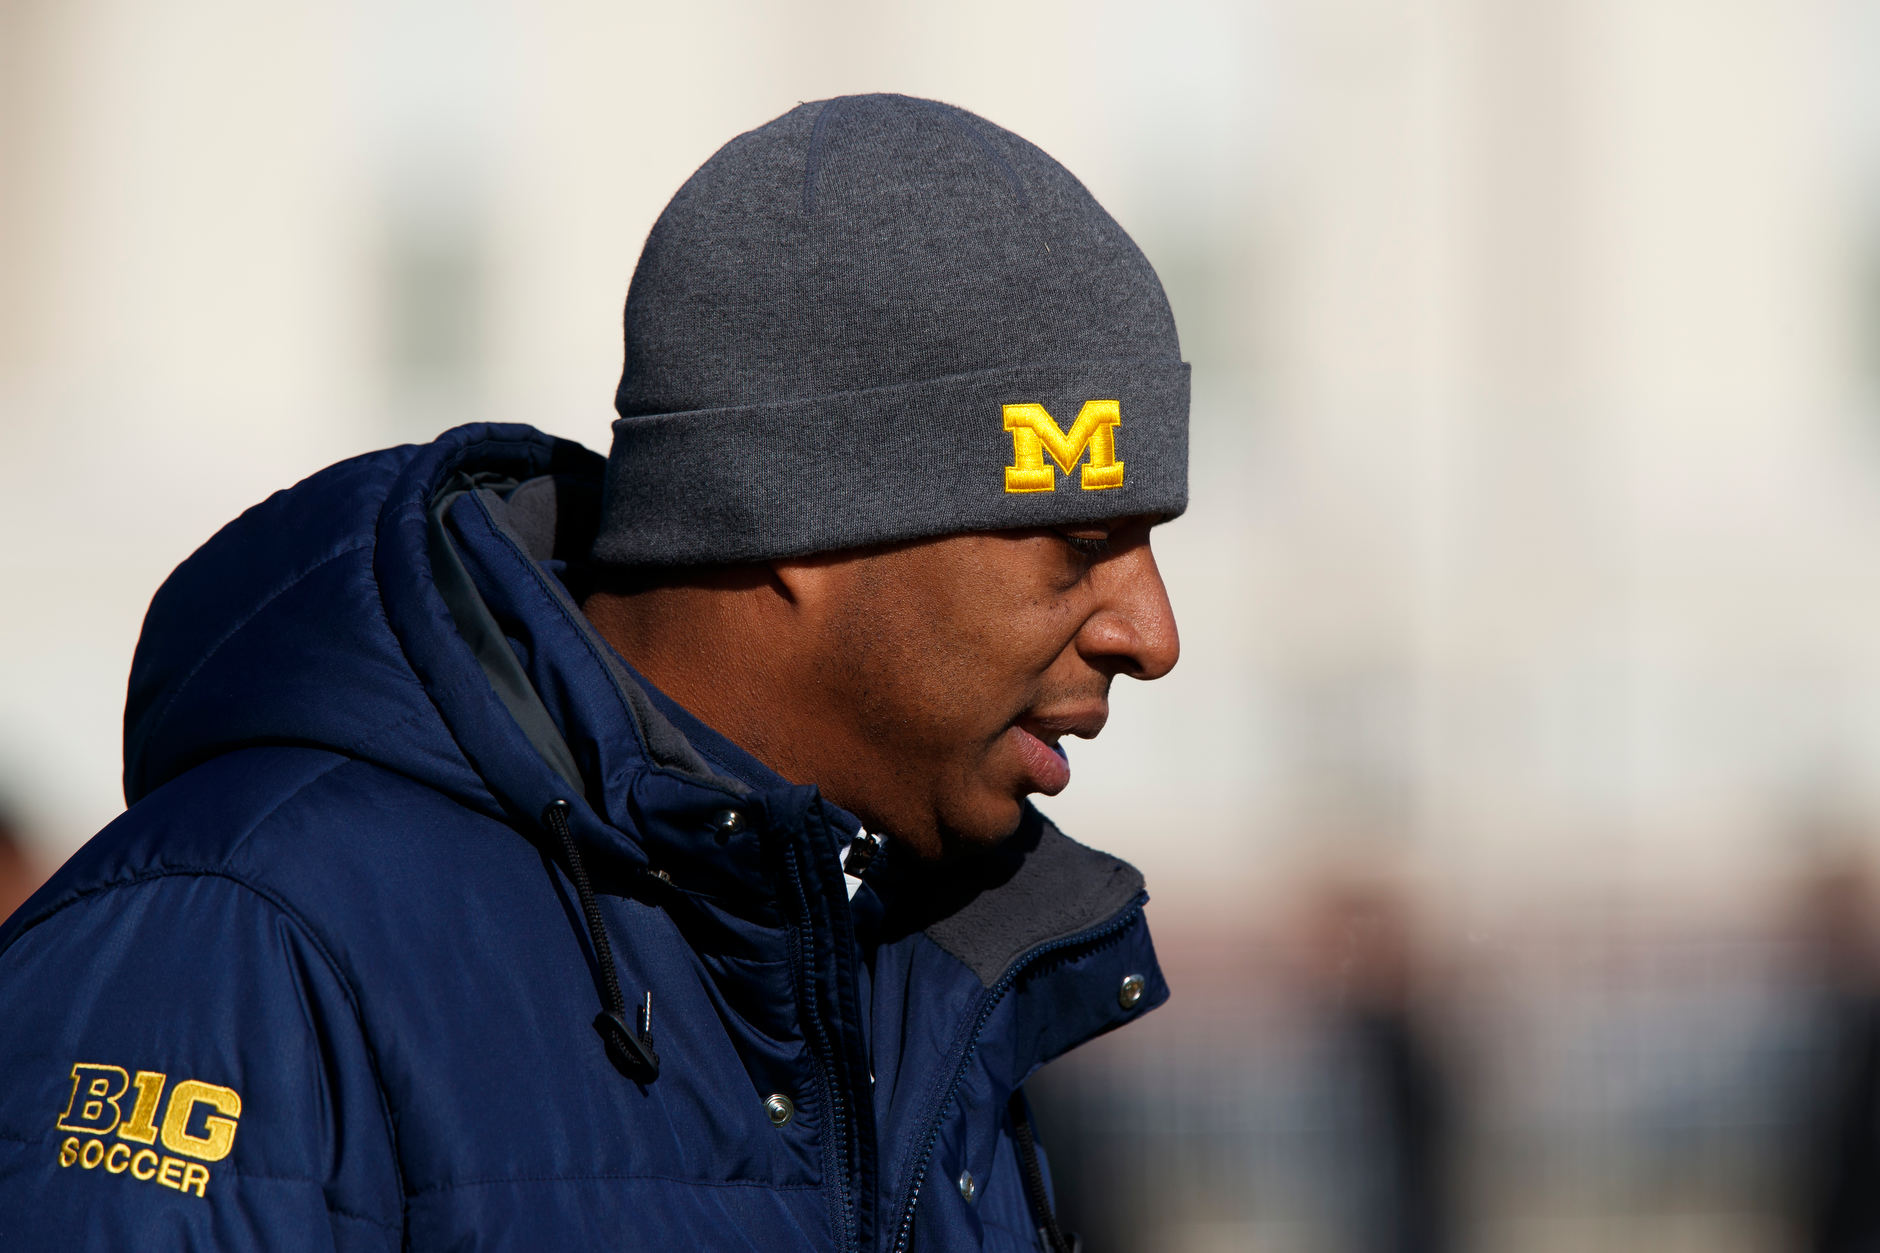 Michigan coach Chaka Daley stands on the sidelines before the Big Ten Men's Soccer Tournament championship game against Indiana at Grand Park in Westfield, Indiana on Sunday, Nov. 11, 2018. (Photo by James Brosher)